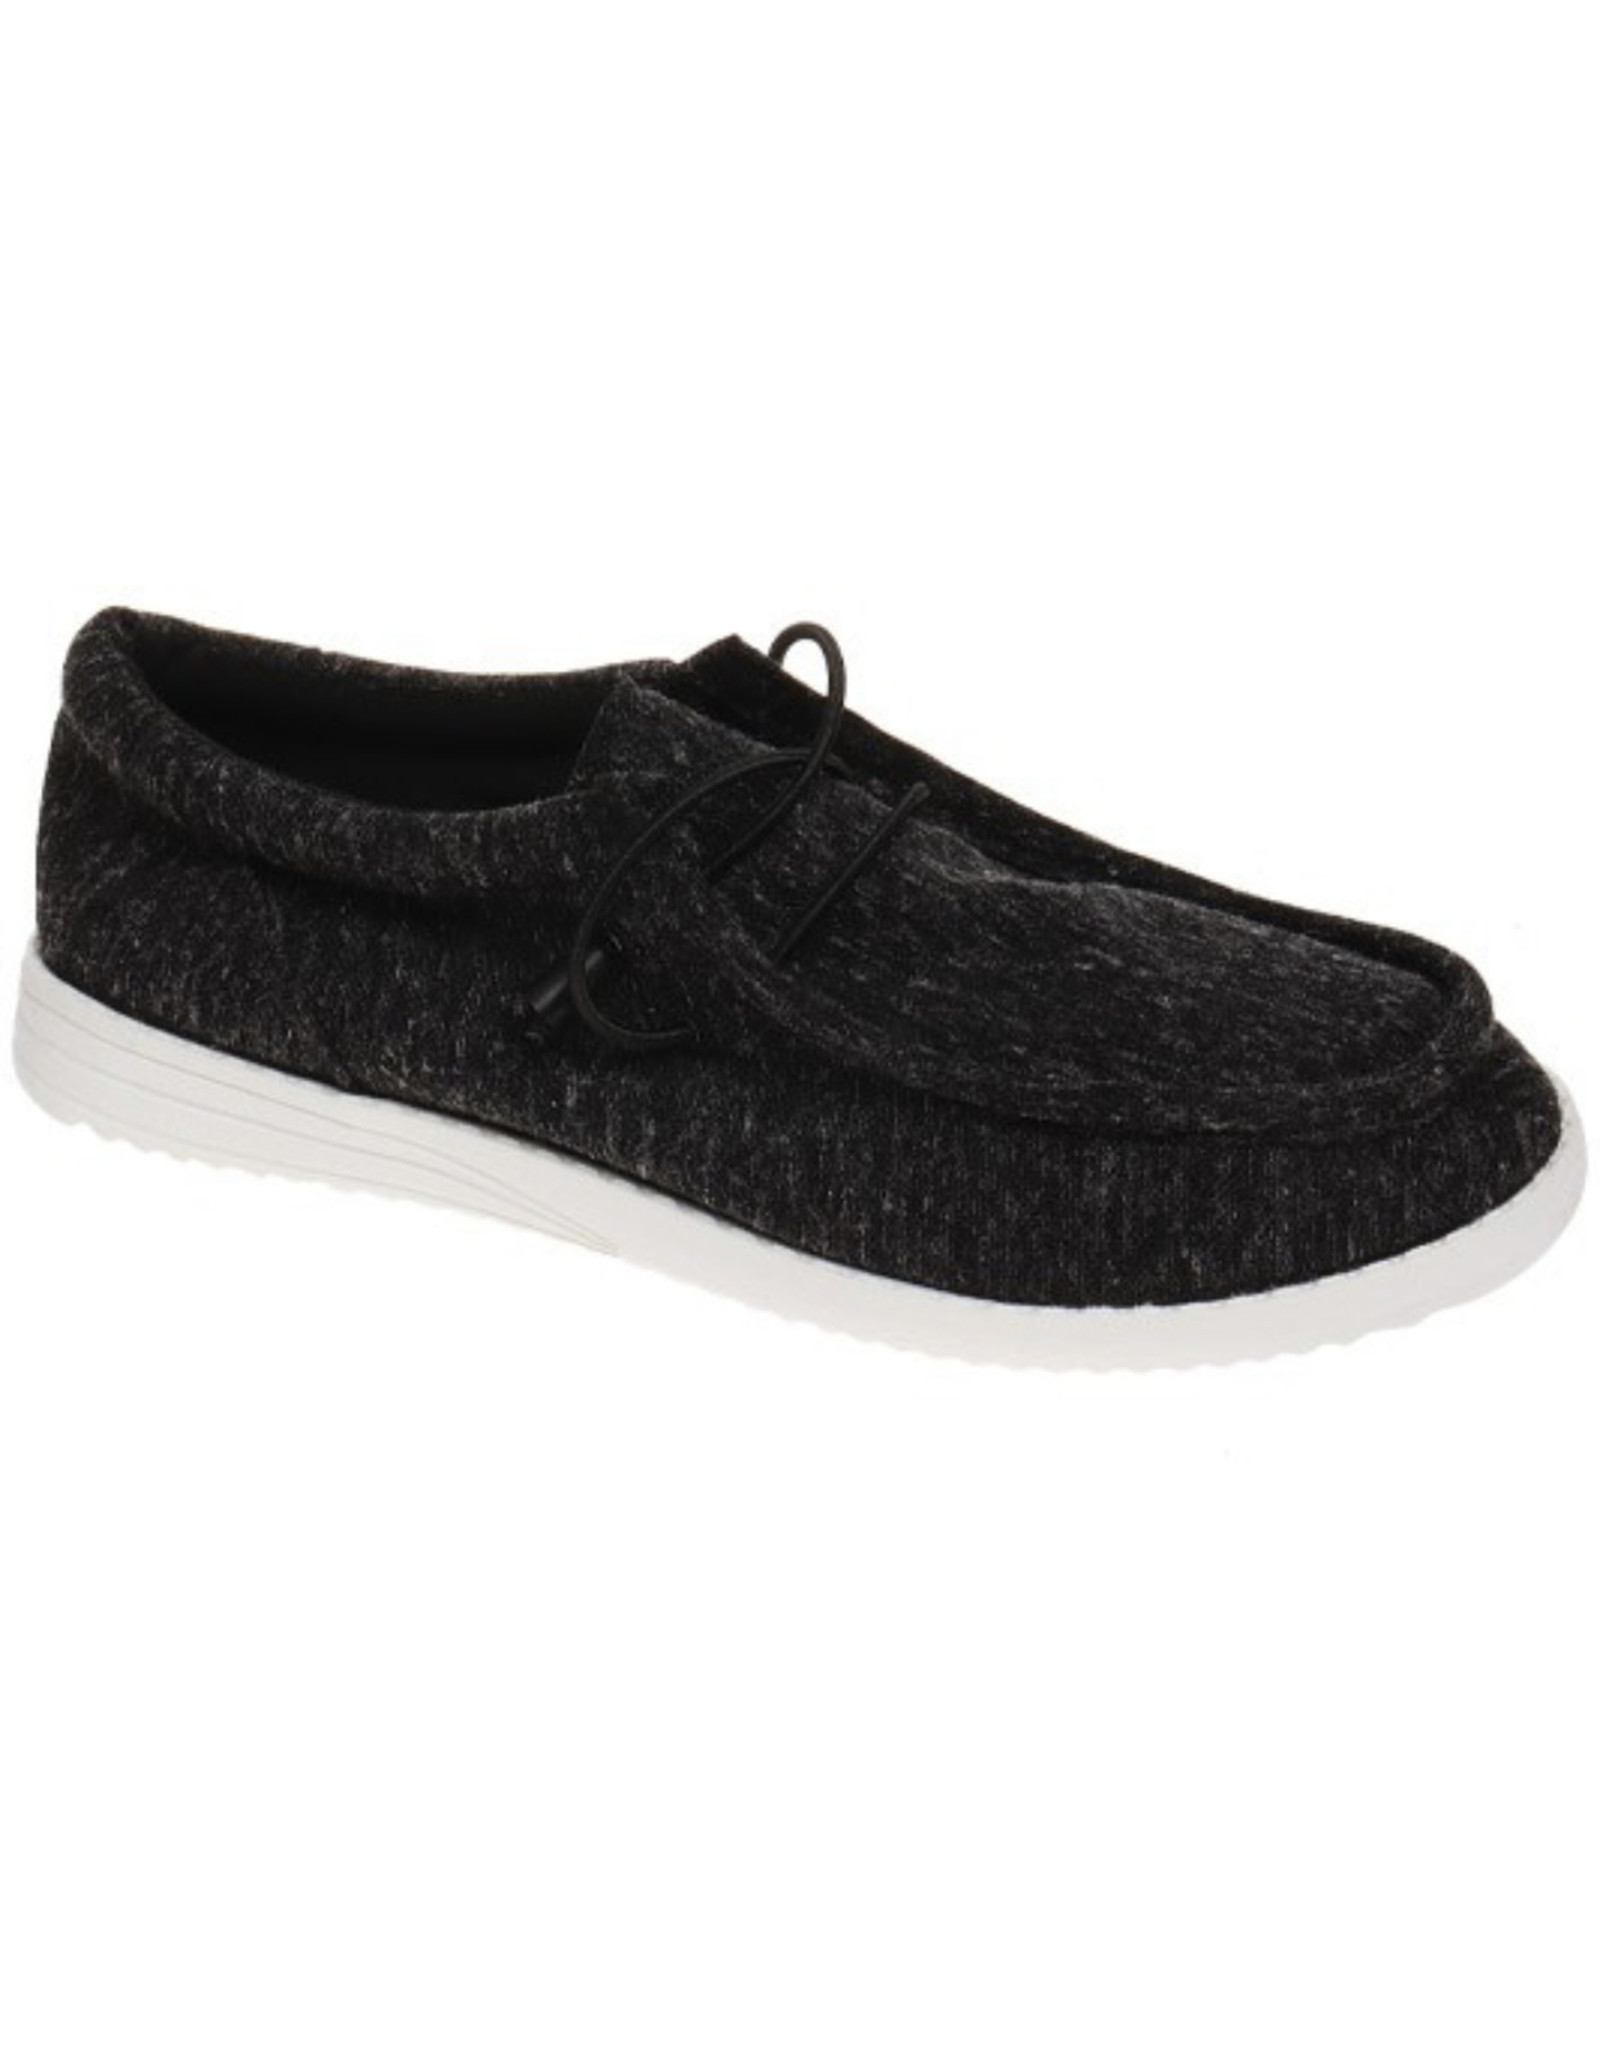 MIAMI SHOE WHOLESALE WALK SLIP ON SNEAKER